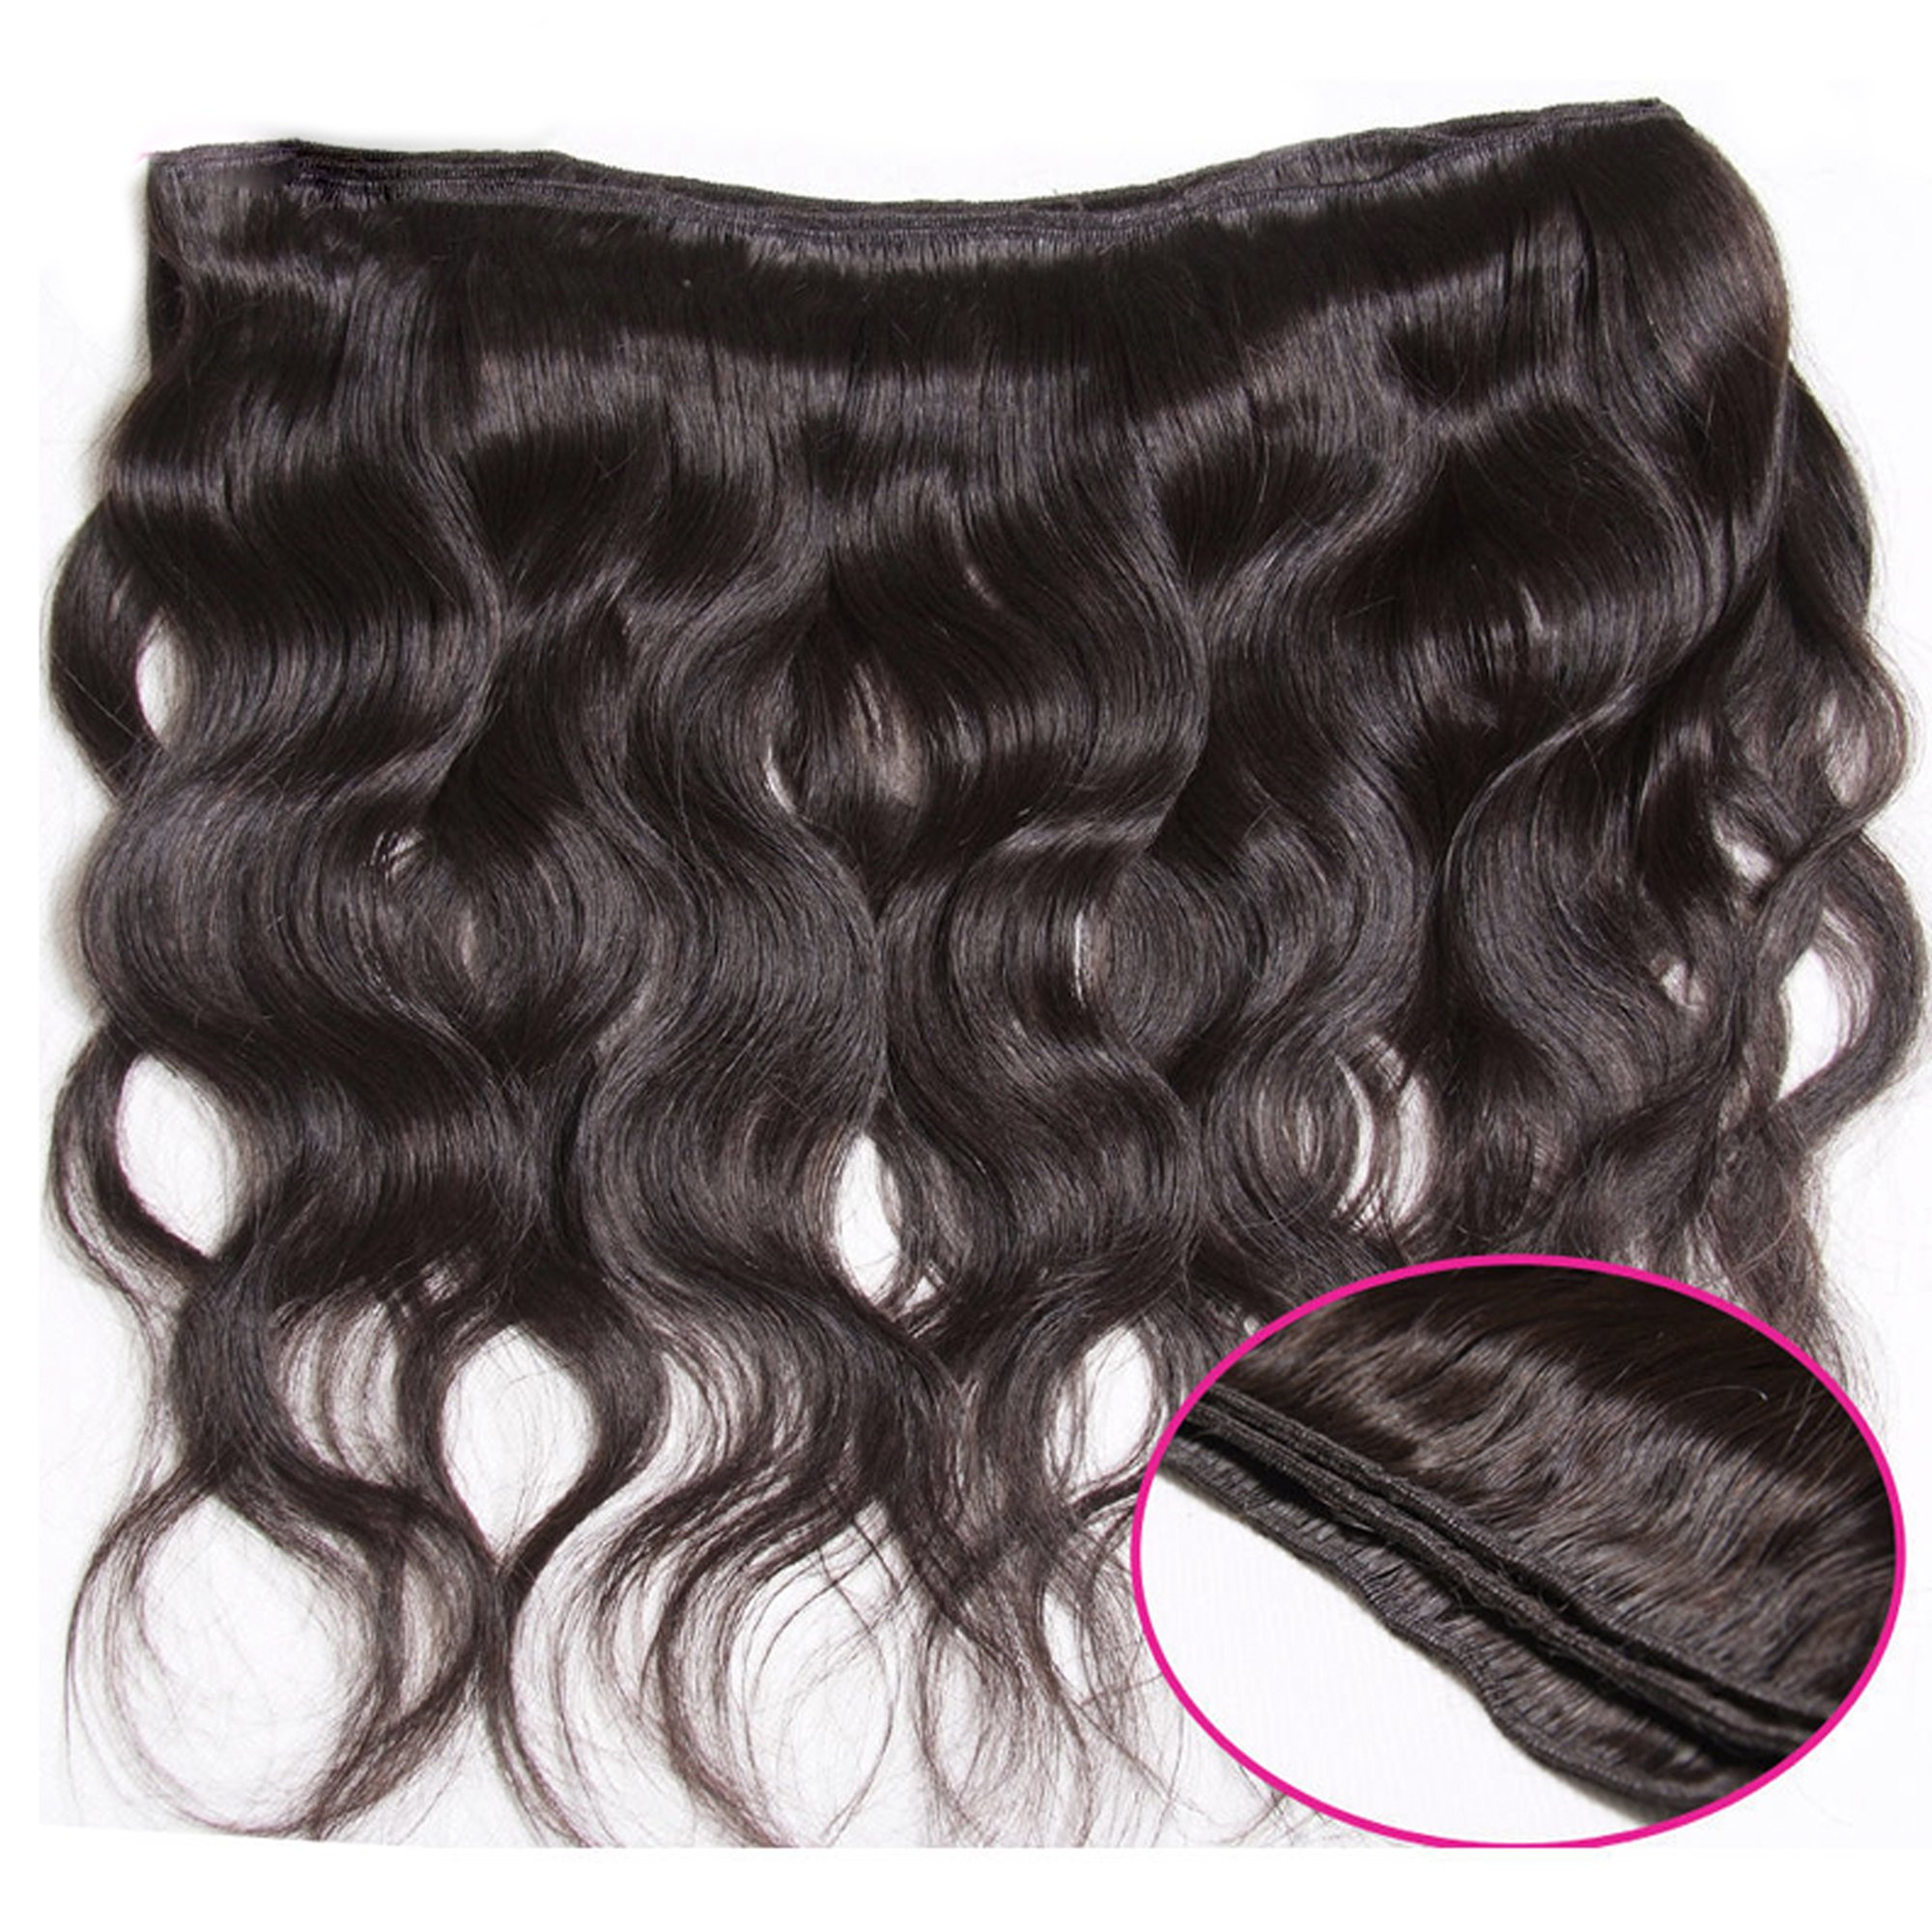 Unice Hair 18 20 22inch Brazilian Virgin Human Hair Weave 3 Bundles Deal Brazilian Body Wave Hair Weft Extensions Natural Color by UNICE (Image #5)